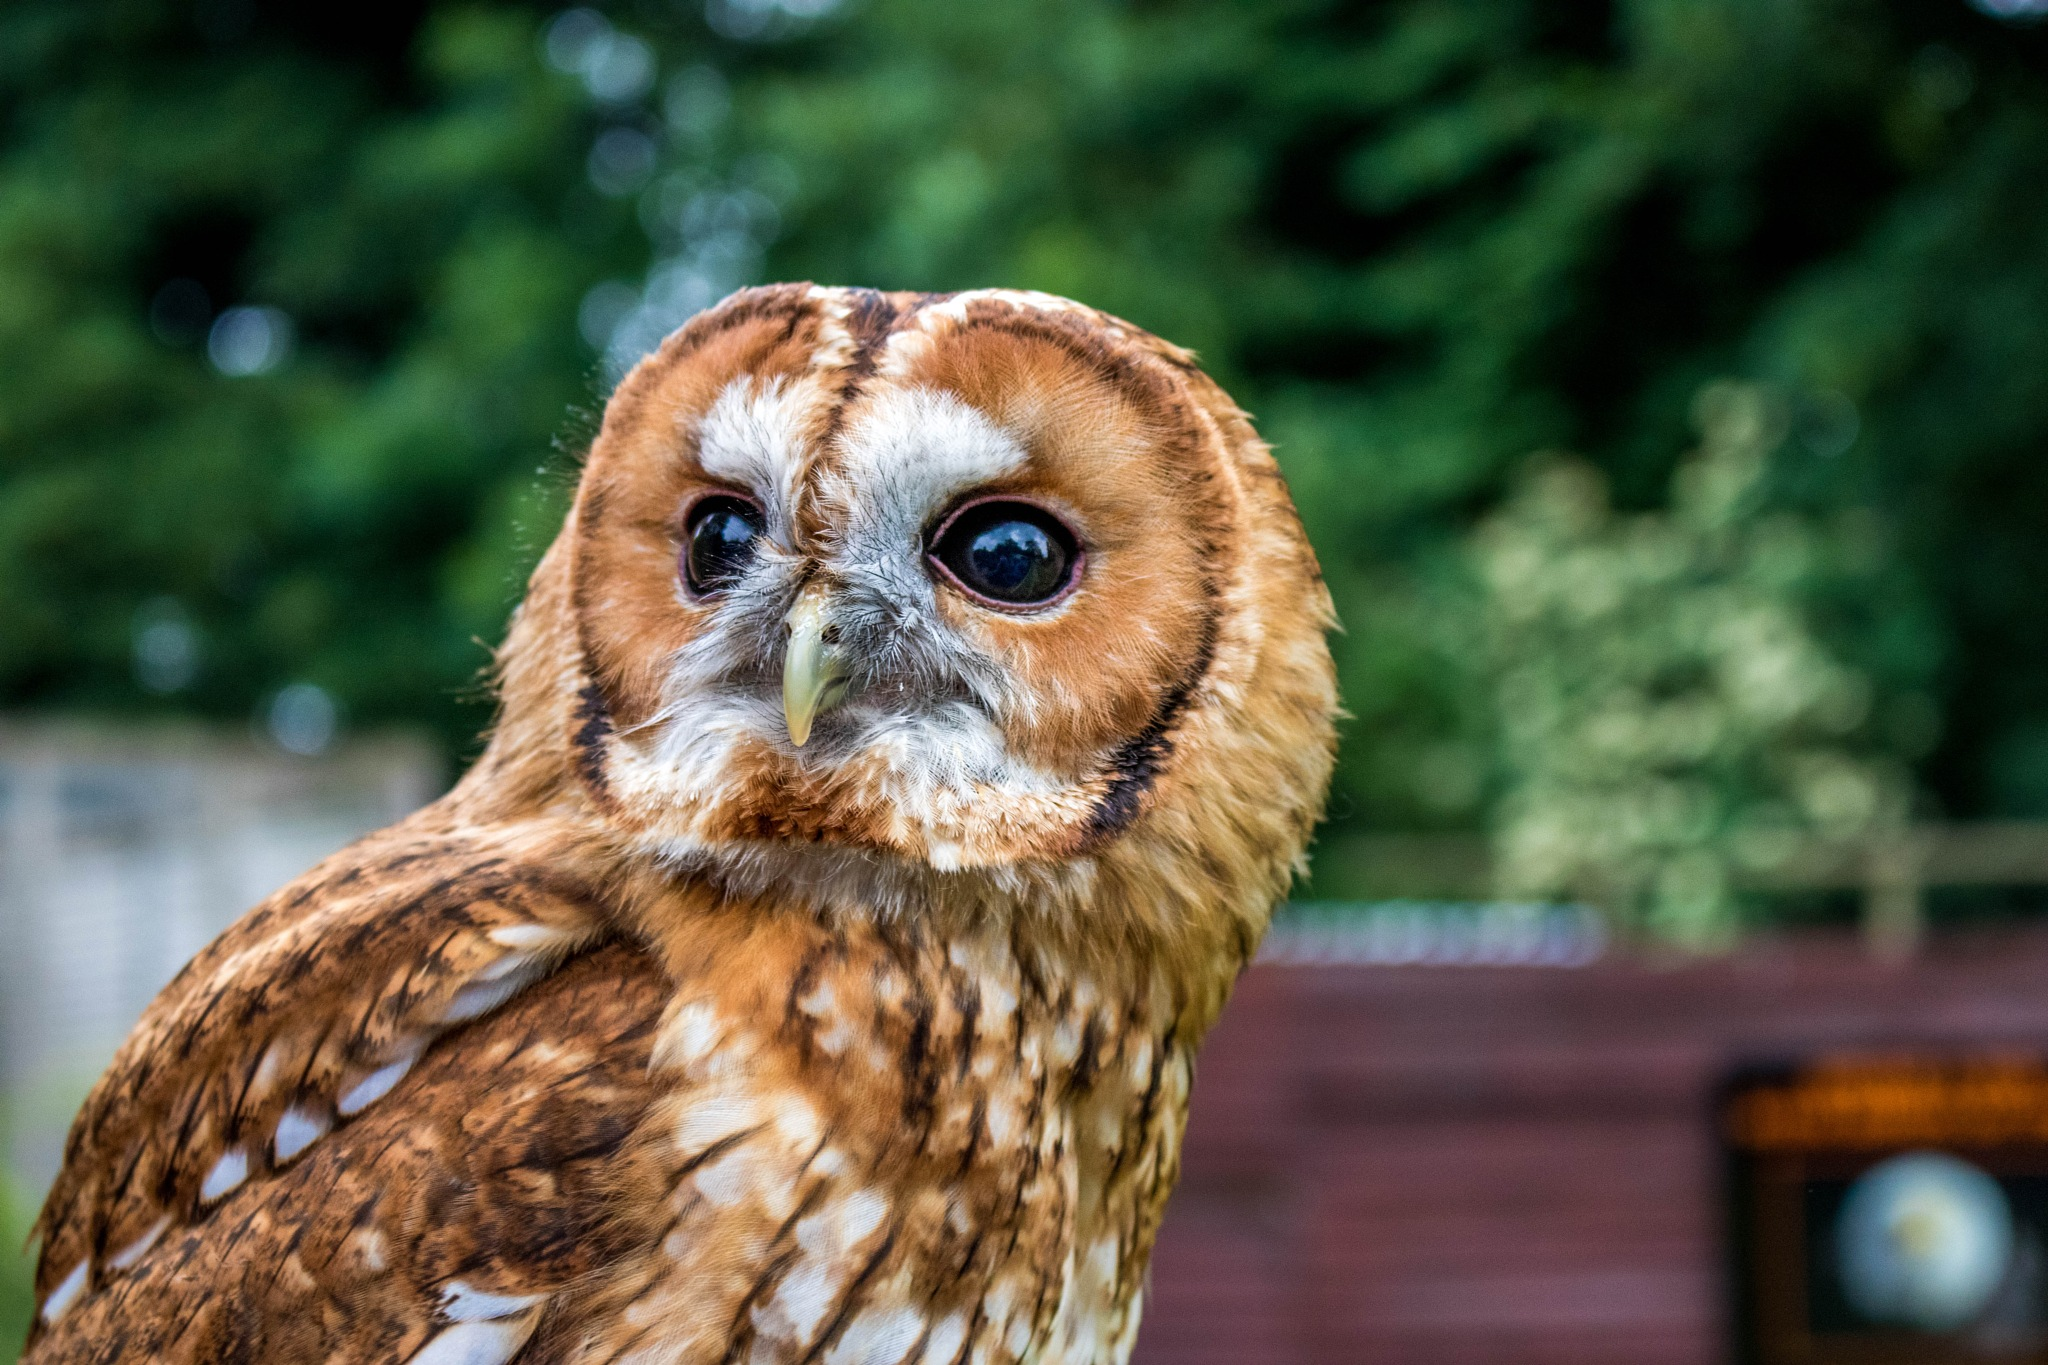 Owl by Colin